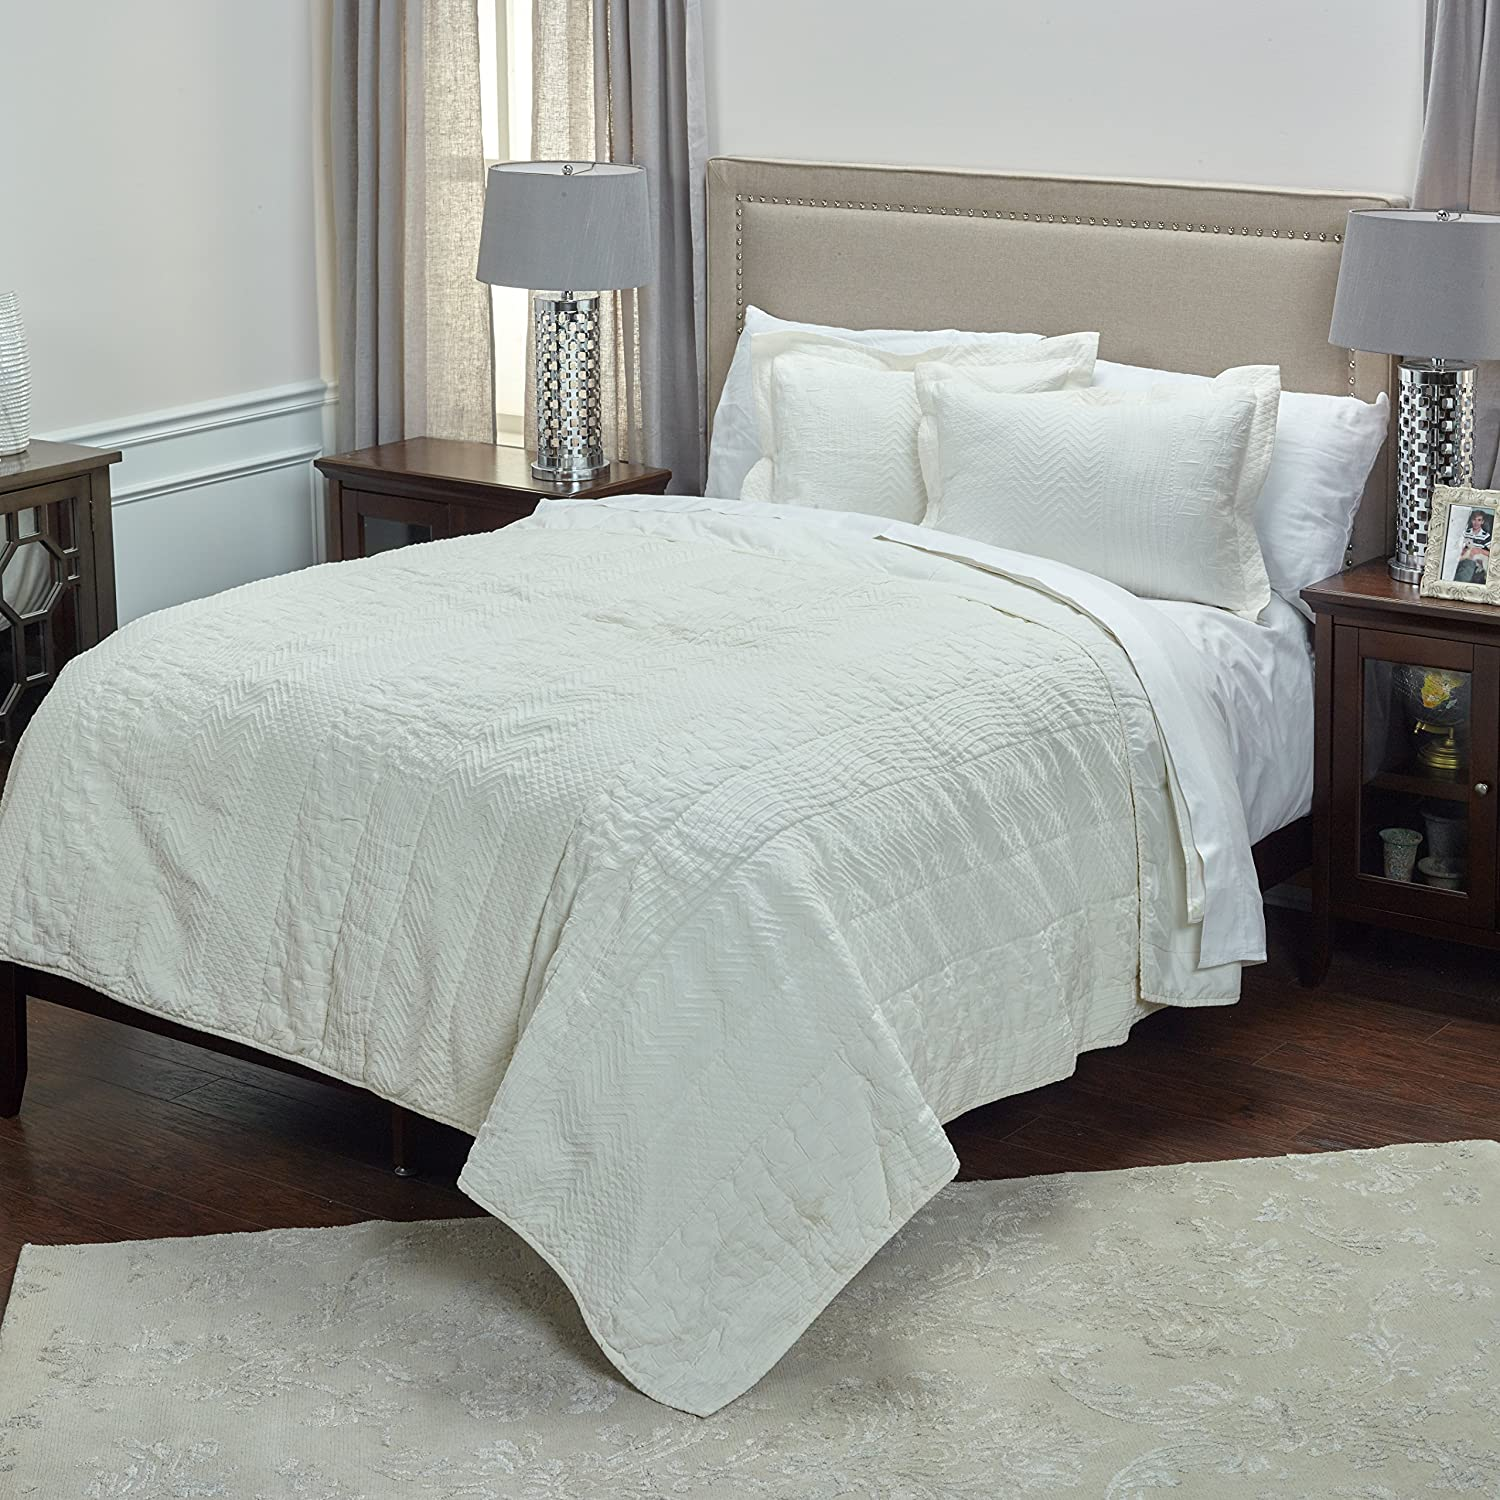 Rizzy Home QLTBT3006IV001692 Quilt, Ivory, King